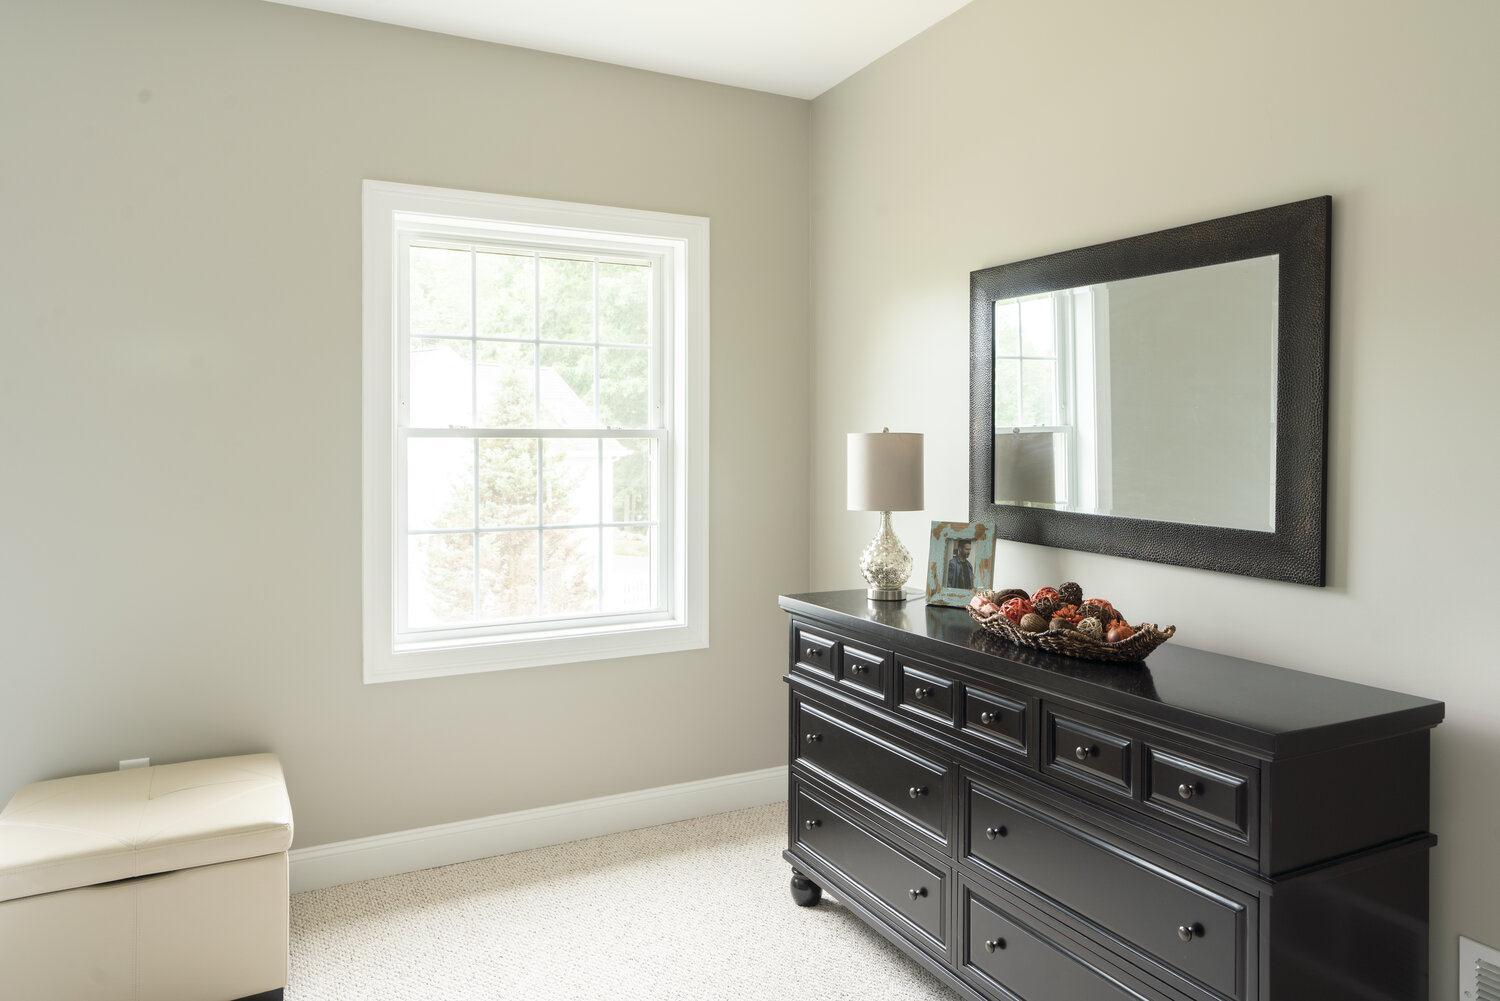 Bedroom featured in The Cornwall By Bidwell Village in Hartford, CT